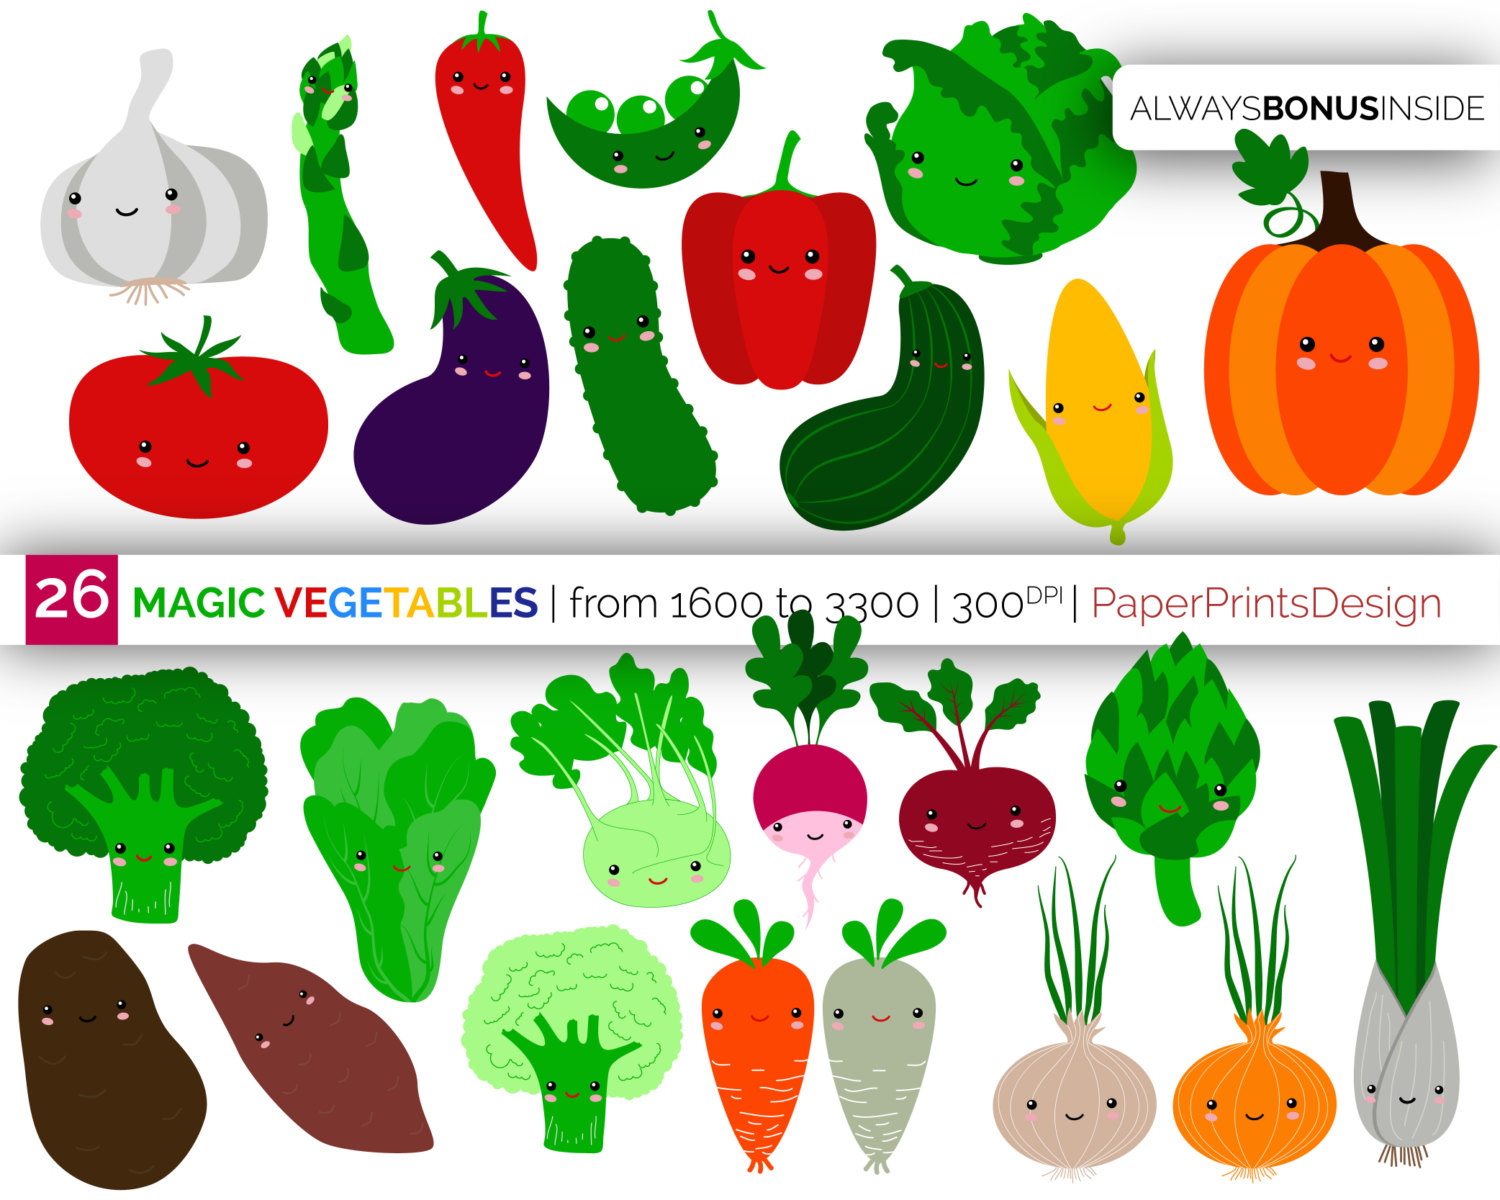 Broccoli clipart veggie Food clipart Kawaii vegetables veggies